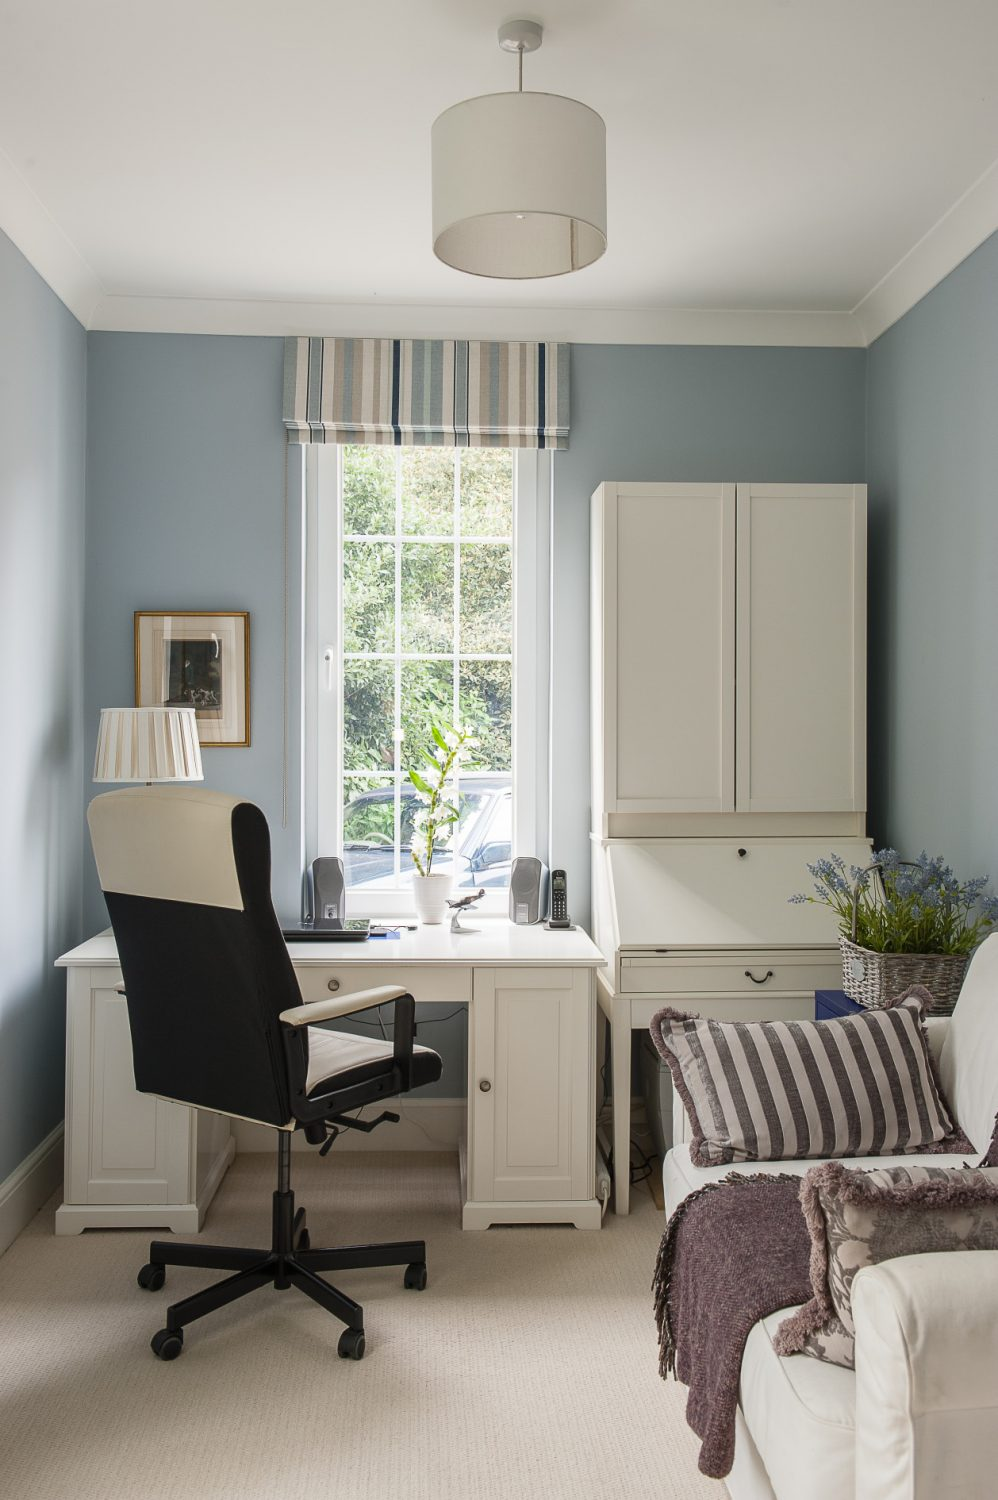 The study is painted in a cool blue and furnished simply with white painted bureau and desk